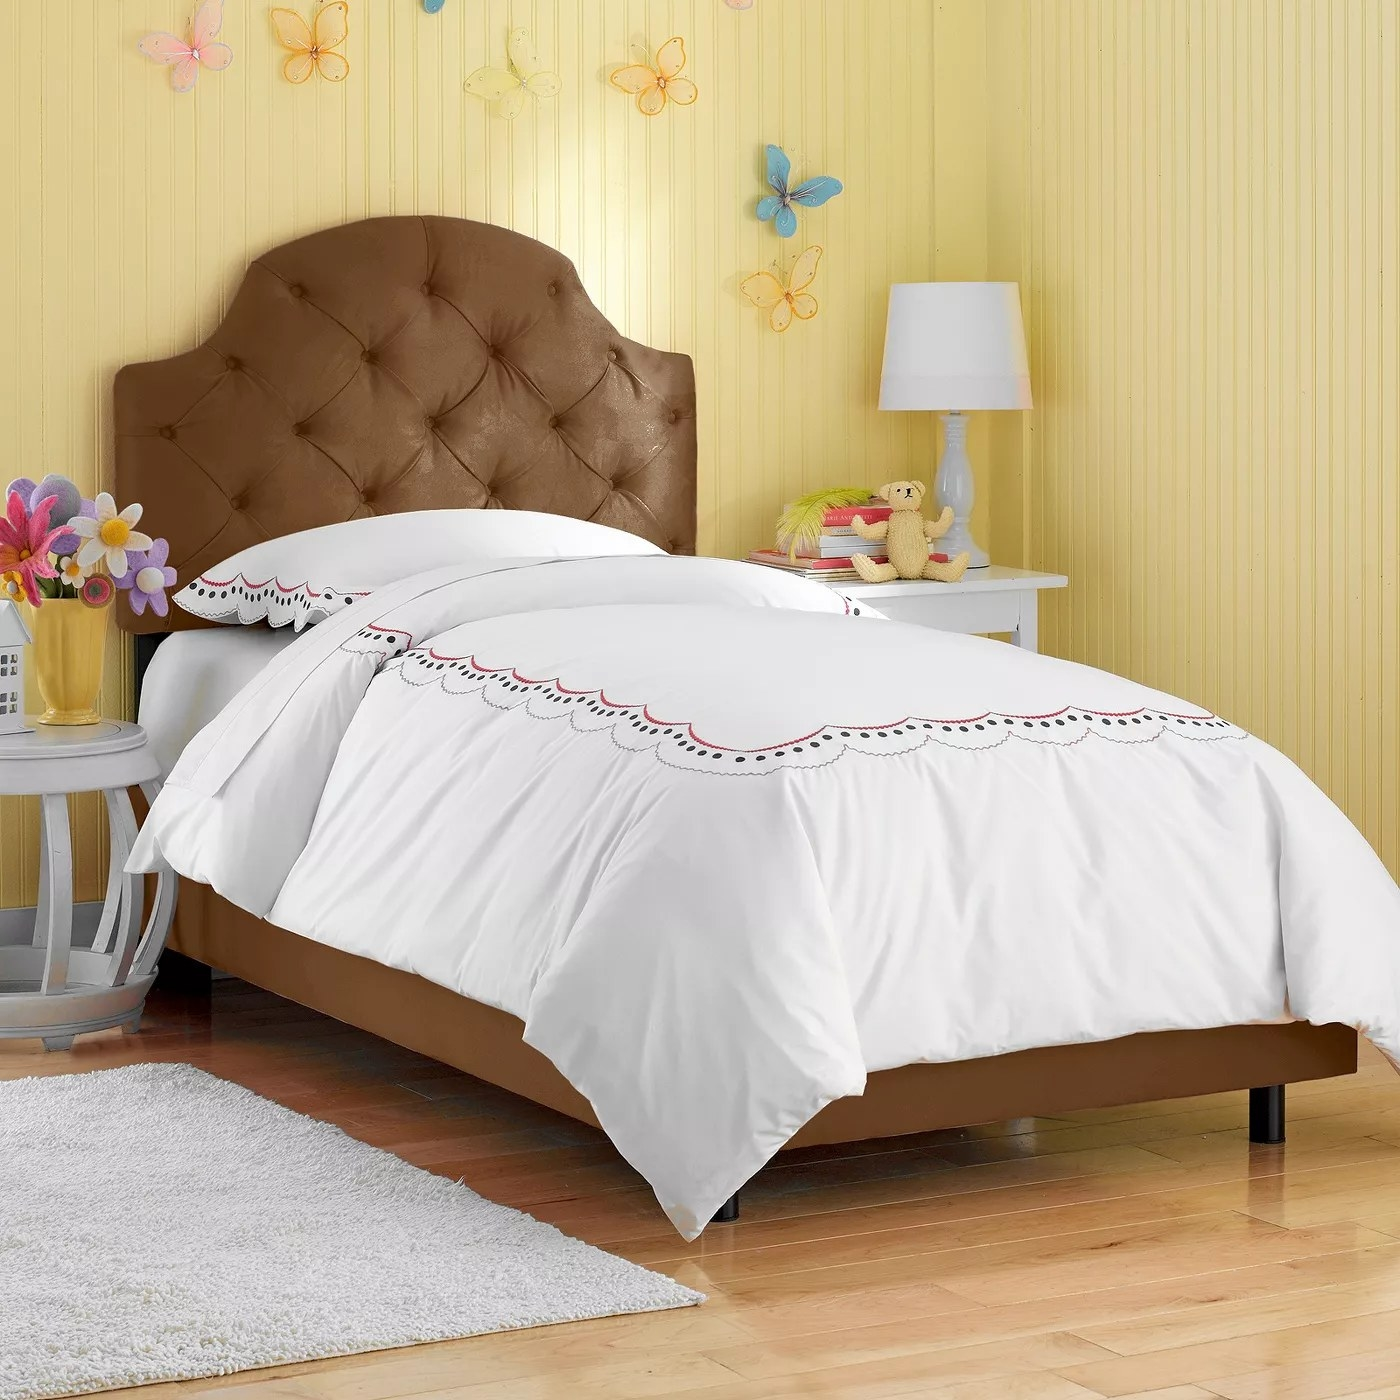 The brown bed with a tufted headboard